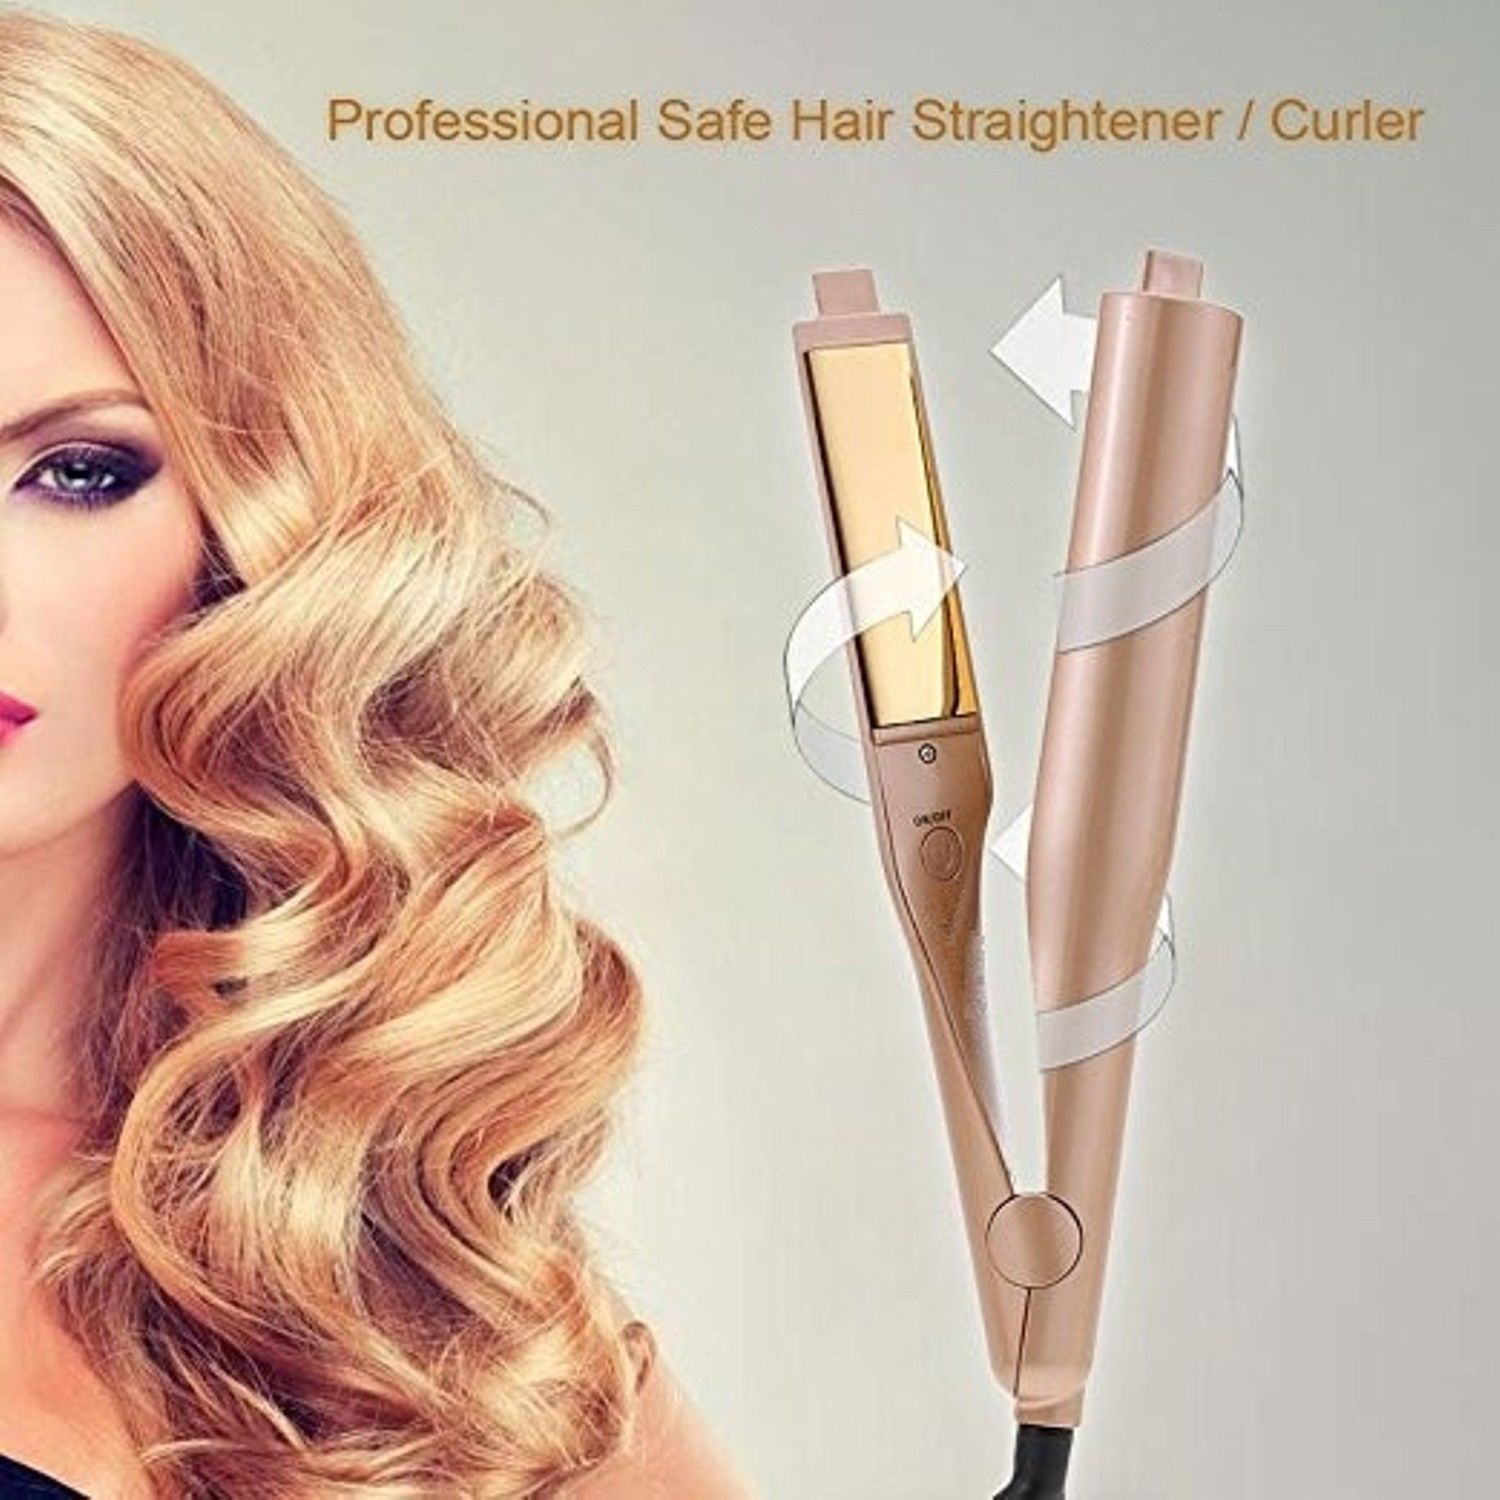 Professional 2in1 Straightener Irons Hair Curler Flat Iron Straightening Styling Tools Iron Curling Ceramic Wave iron professional vibrating titanium hair straightener digital display ceramic straightening irons flat iron hair styling tools